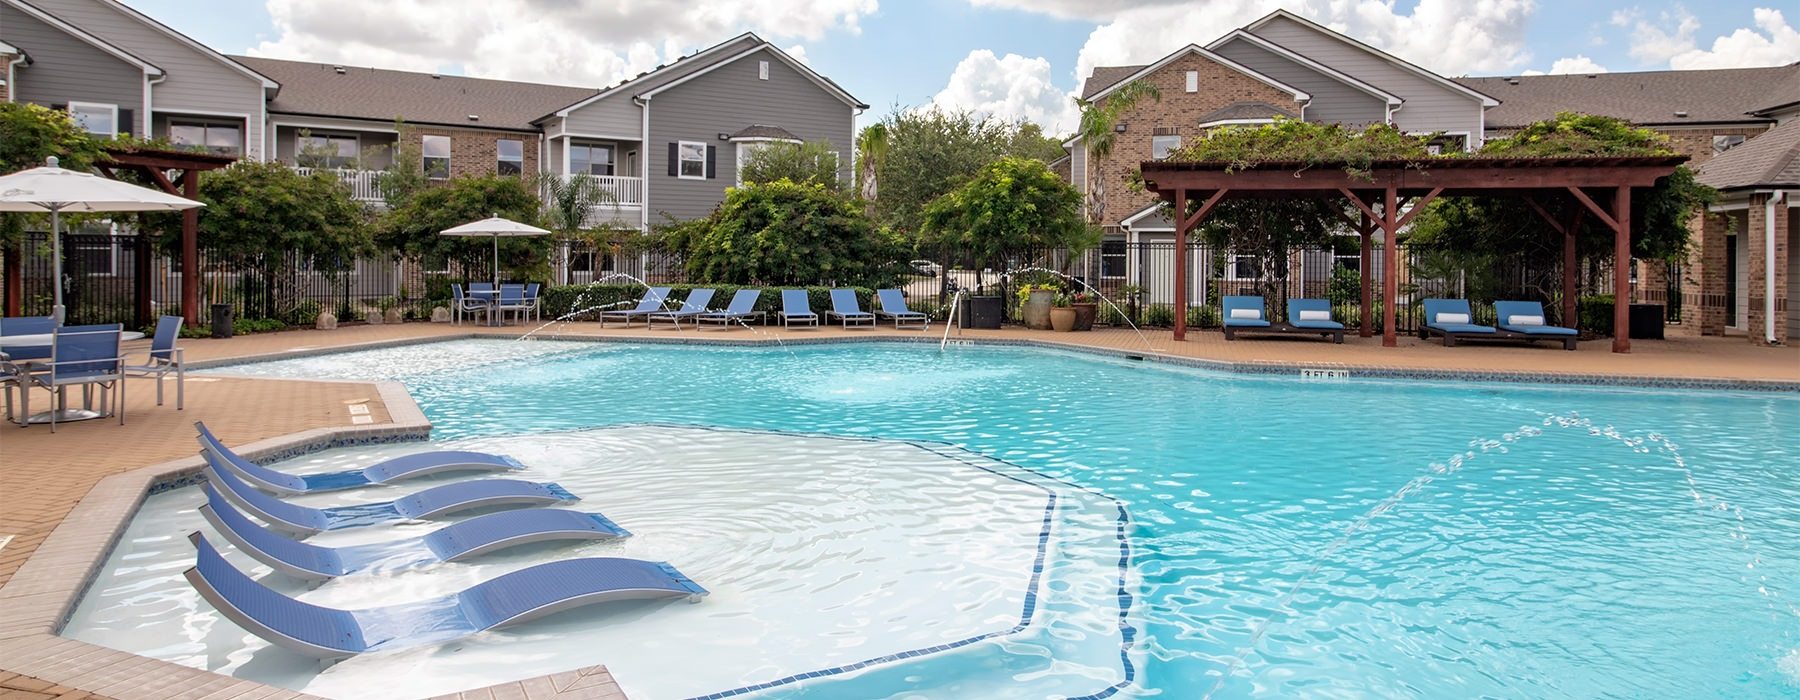 Spacious pool with sundeck and multiple cabanas